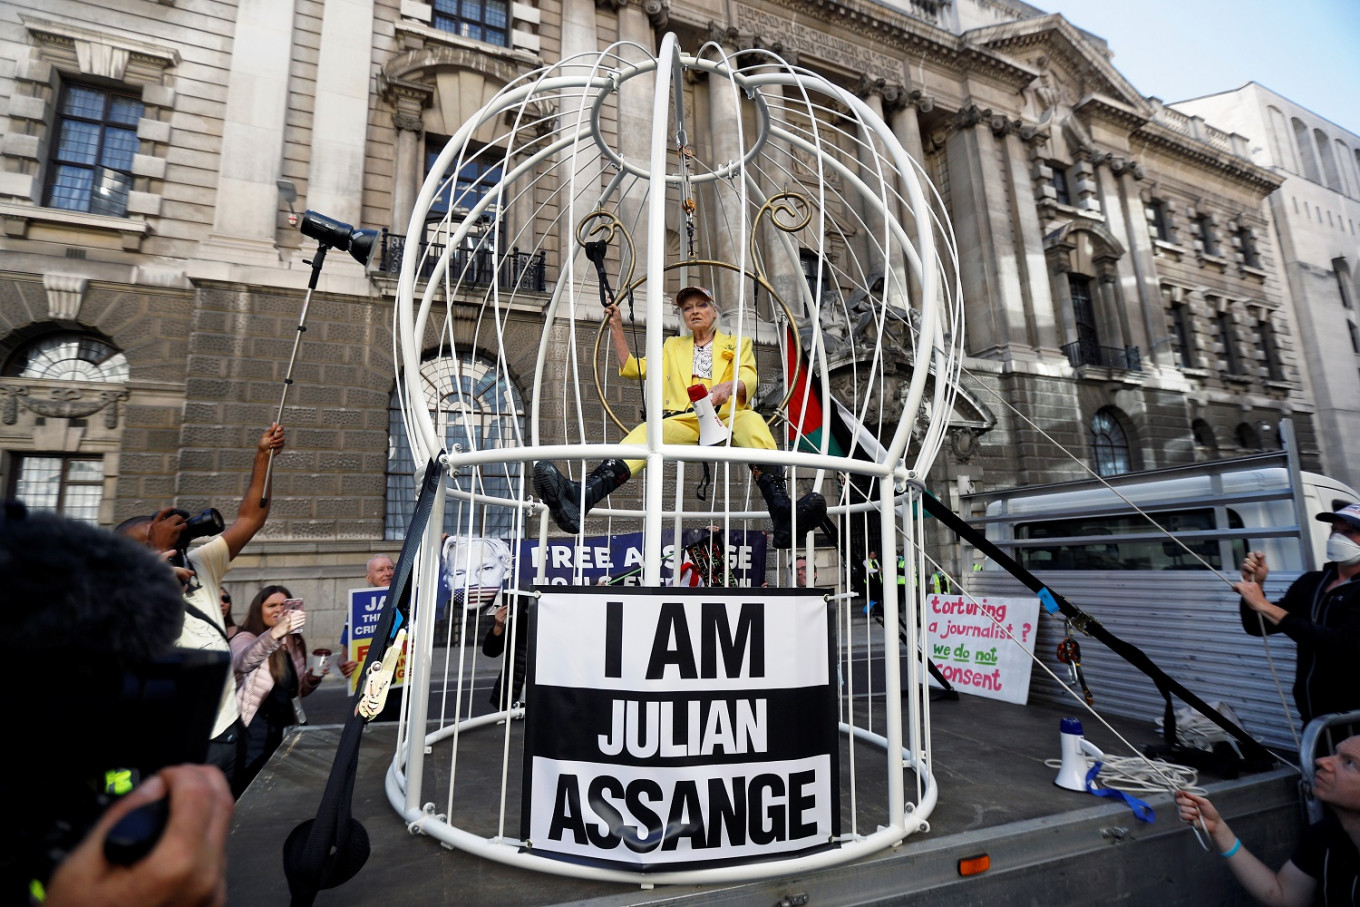 Caged like a 'canary', Vivienne Westwood protests for Assange in London